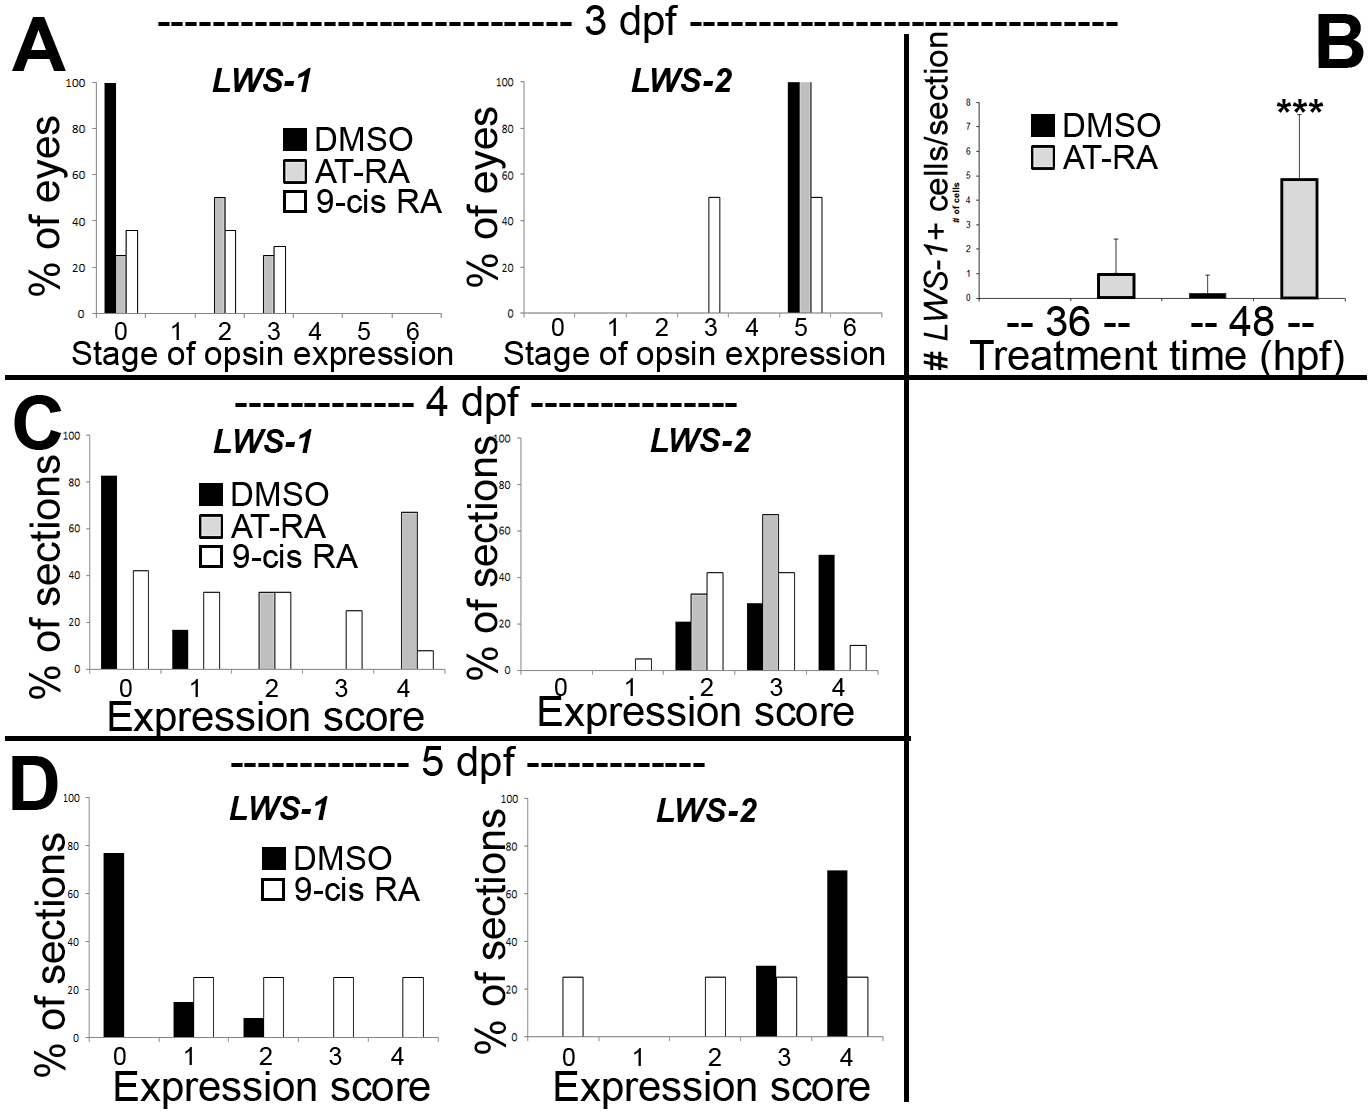 Quantitative analysis of expression patterns of <i>LWS1</i> and <i>LWS2</i> in response to all-trans RA (at-RA) or 9-cis RA treatment.